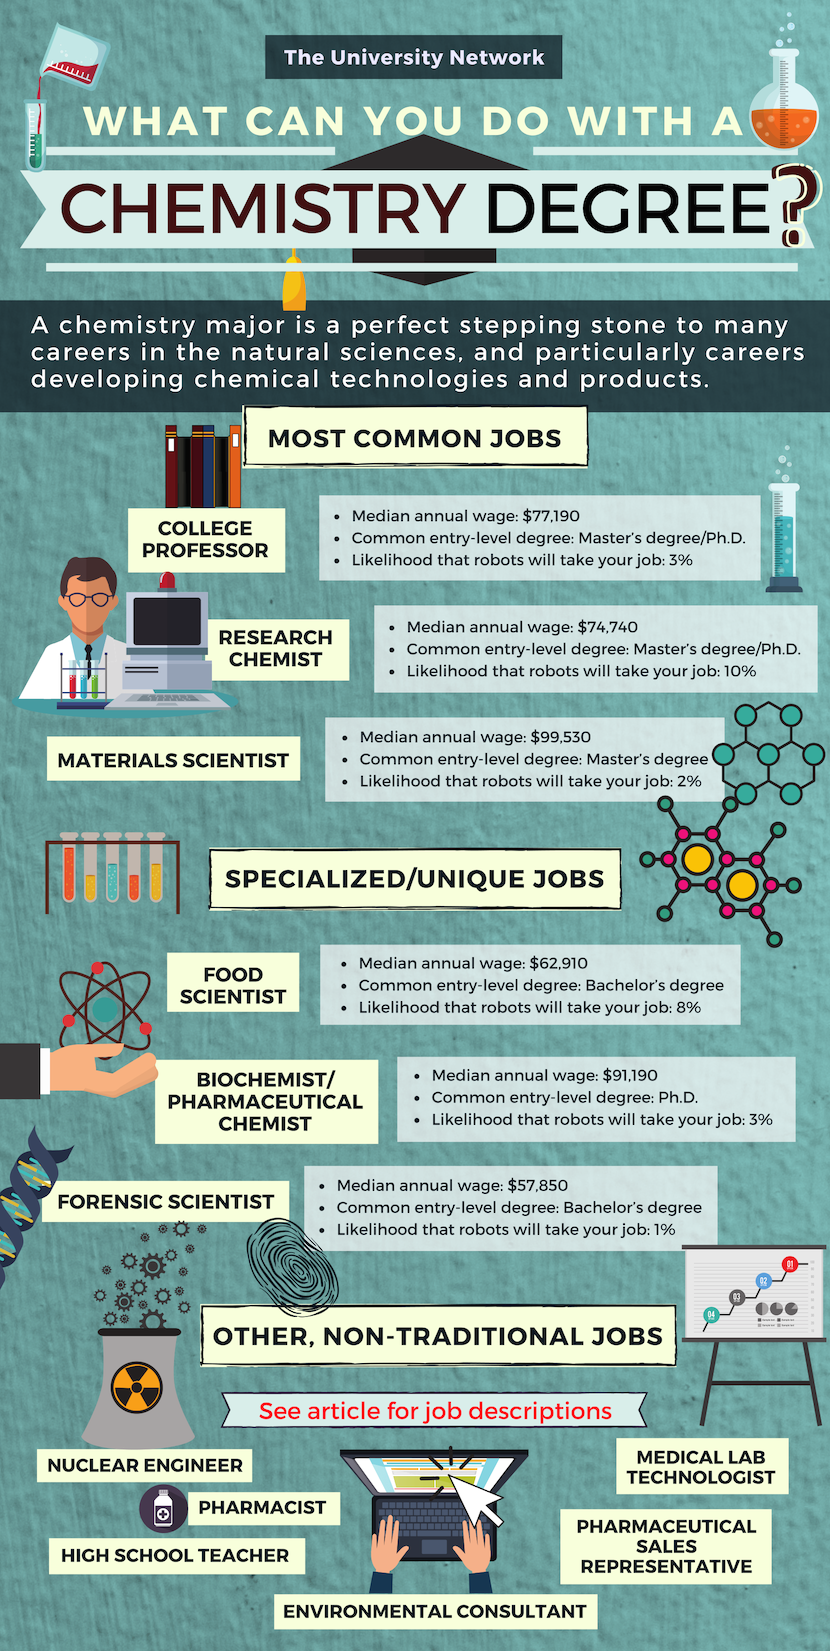 What Are The Career Paths For A Chemistry Major Click To Read Job Descriptions And See Full Details Caree Chemistry Jobs Chemistry Degree Teaching Chemistry